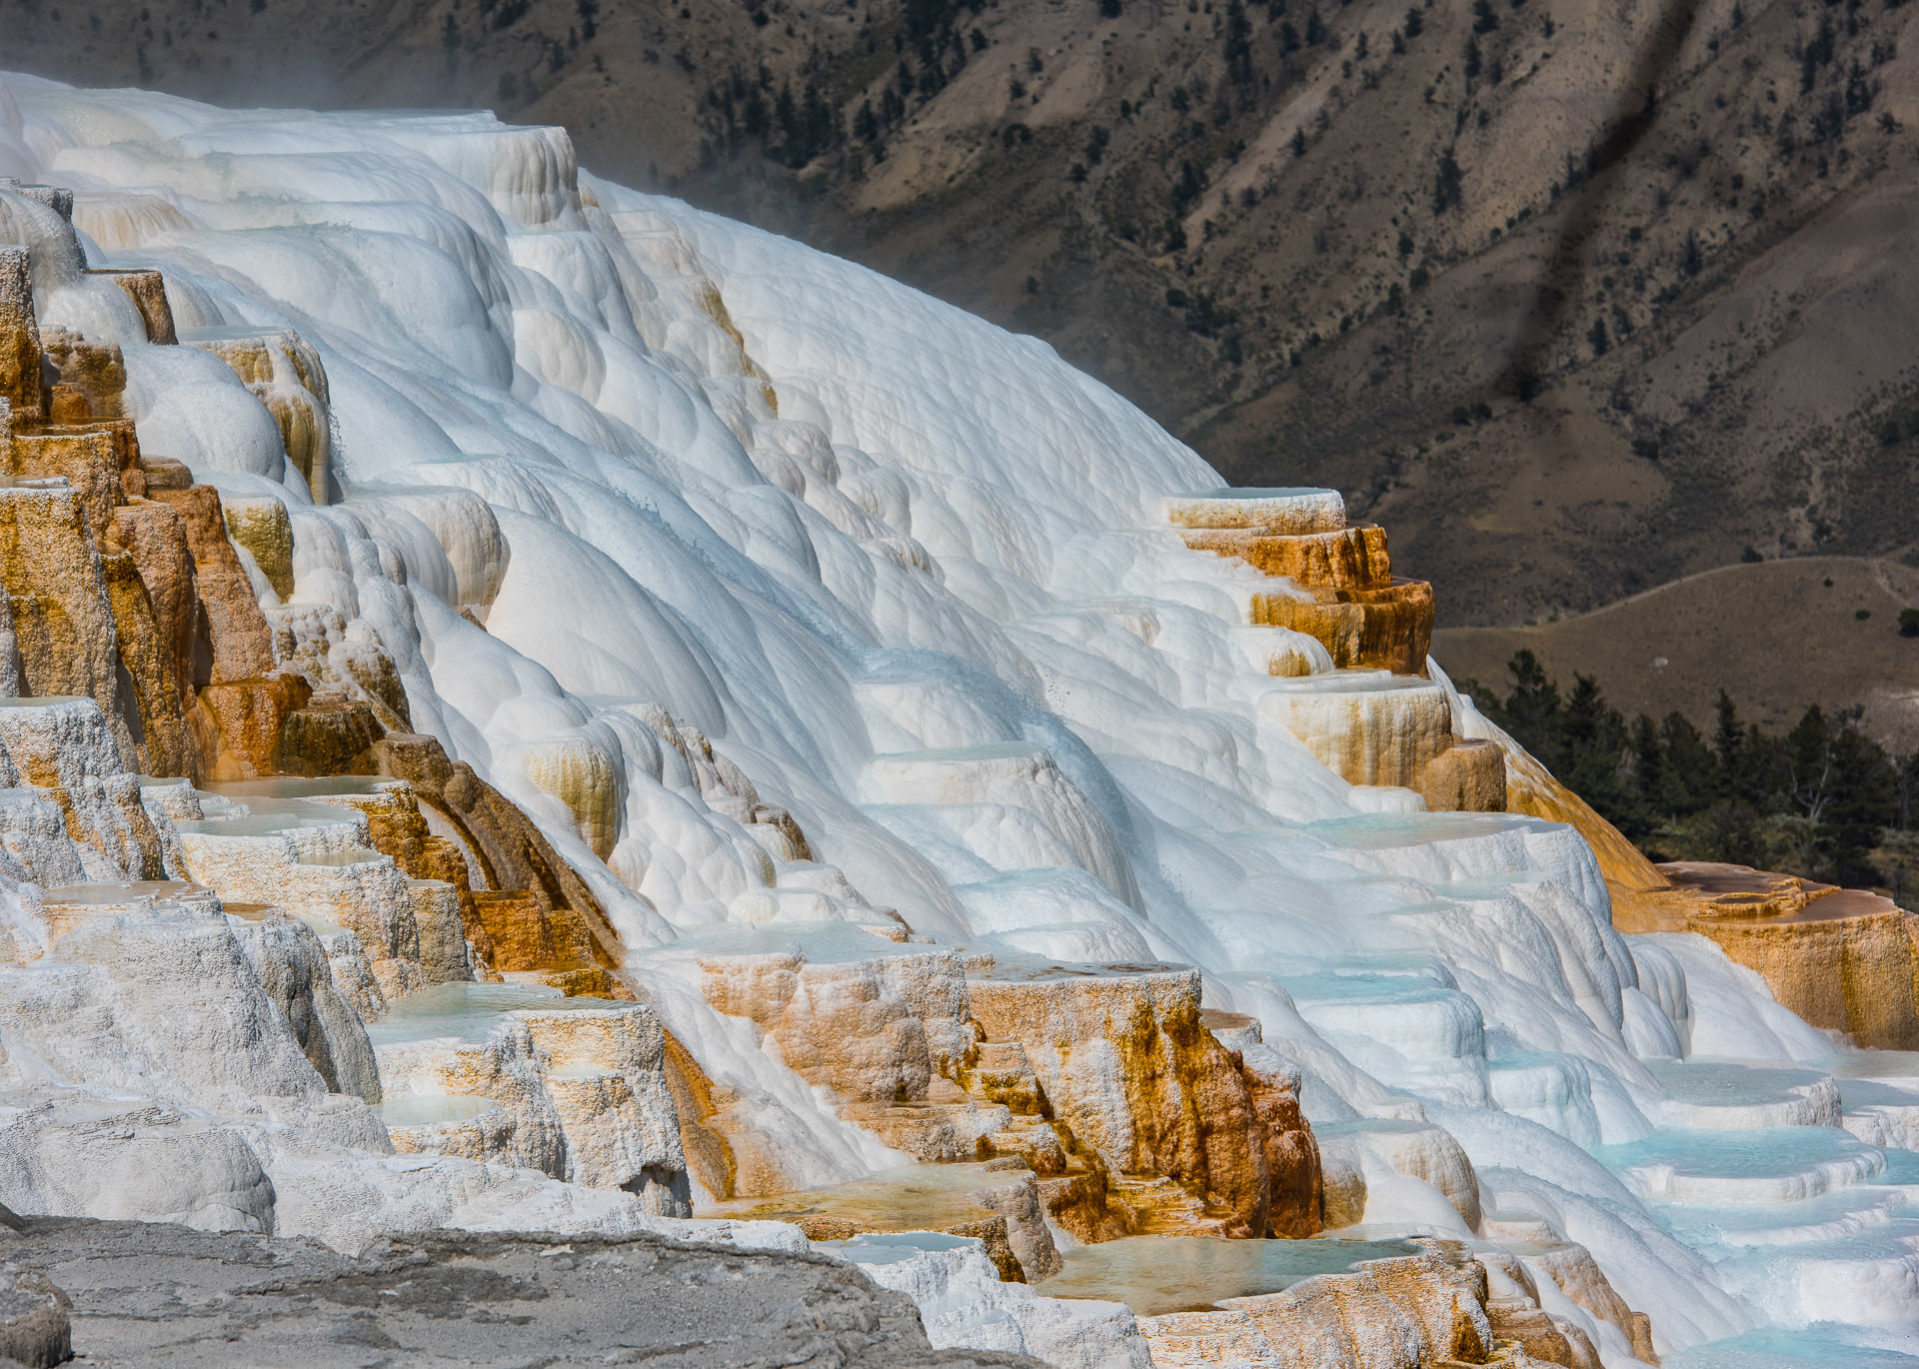 Mammoth Hot Springs - Yellowstone National Park, Wyoming - Part 7 - Travel Obscura